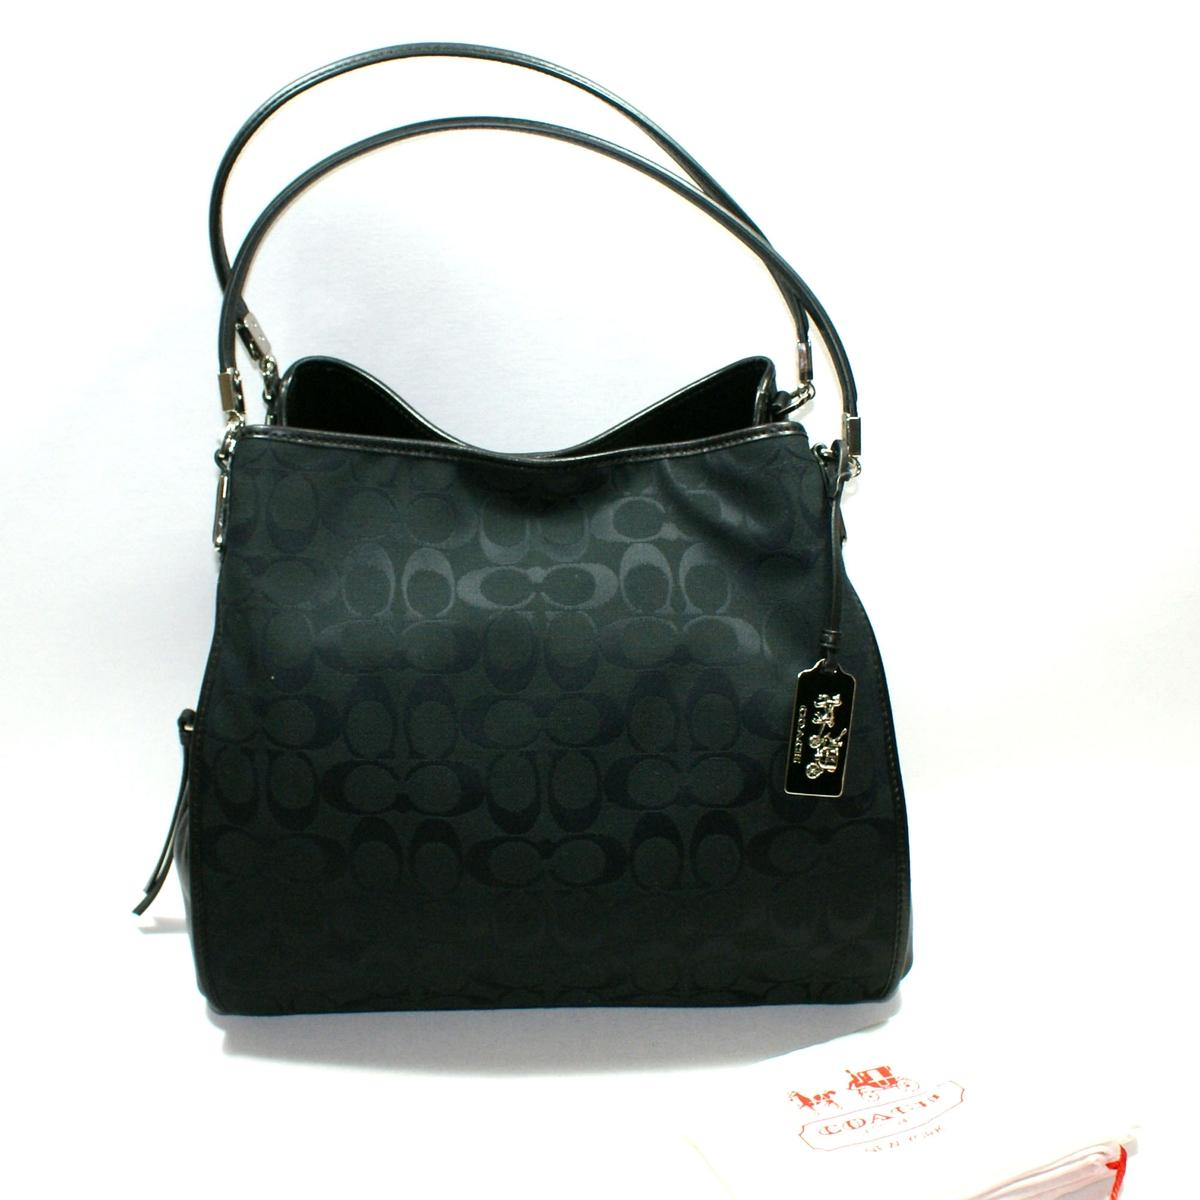 1f5fab6a96d7 ... denmark home coach madison signature small phoebe hobo bag black. click  thumbnail to zoom.